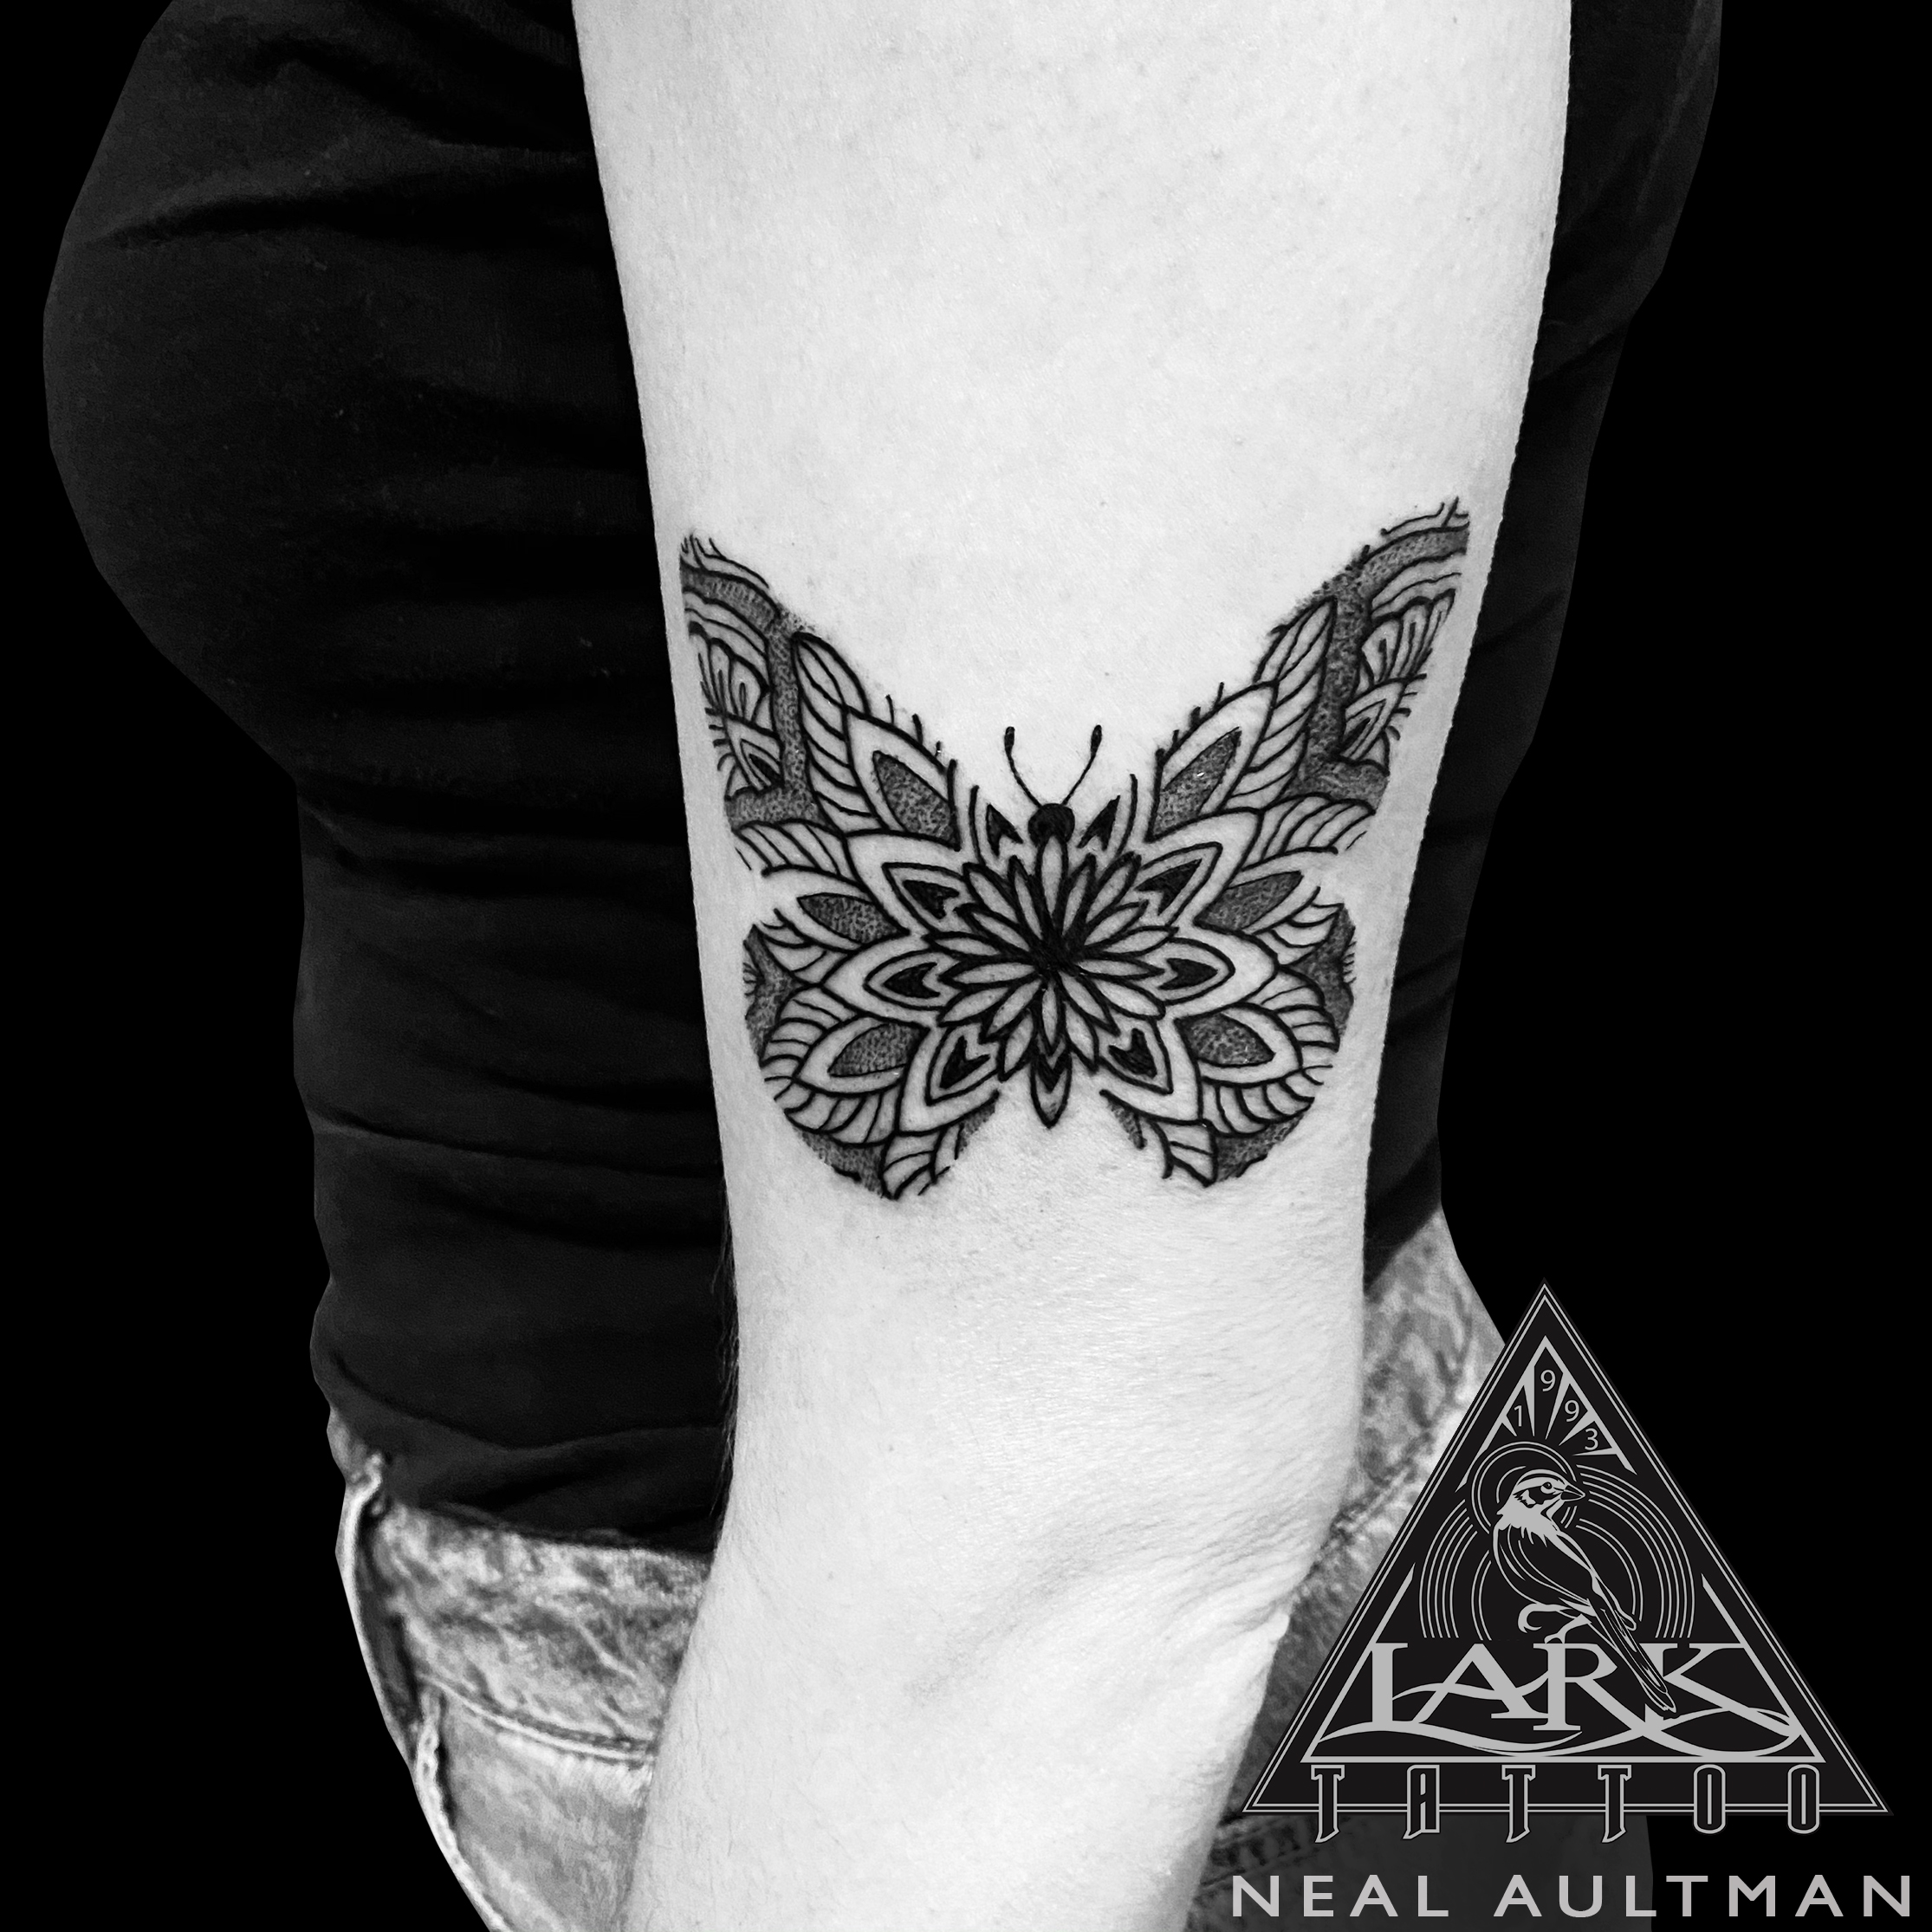 #LarkTattoo #NealAultman #NealAultmanLarkTattoo #Tattoo #Tattoos #Butterfly #ButterflyTattoo #Dotwork #DotworkTattoo #ArmTattoo #BNGTattoo #BNGInkSociety #BlackAndGray #BlackAndGrayTattoo #BlackAndGrey #BlackAndGreyTattoo #Mandala #MandalaTattoo #TattooArtist #Tattoist #Tattooer #LongIslandTattooArtist #LongIslandTattooer #LongIslandTattoo #TattooOfTheDay #Tat #Tats #Tatts #Tatted #Inked #Ink #TattooInk #AmazingInk #AmazingTattoo #BodyArt #LarkTattooWestbury #Westbury #LongIsland #NY #NewYork #USA #Art #Tattedup #InkedUp #LarkTattoos